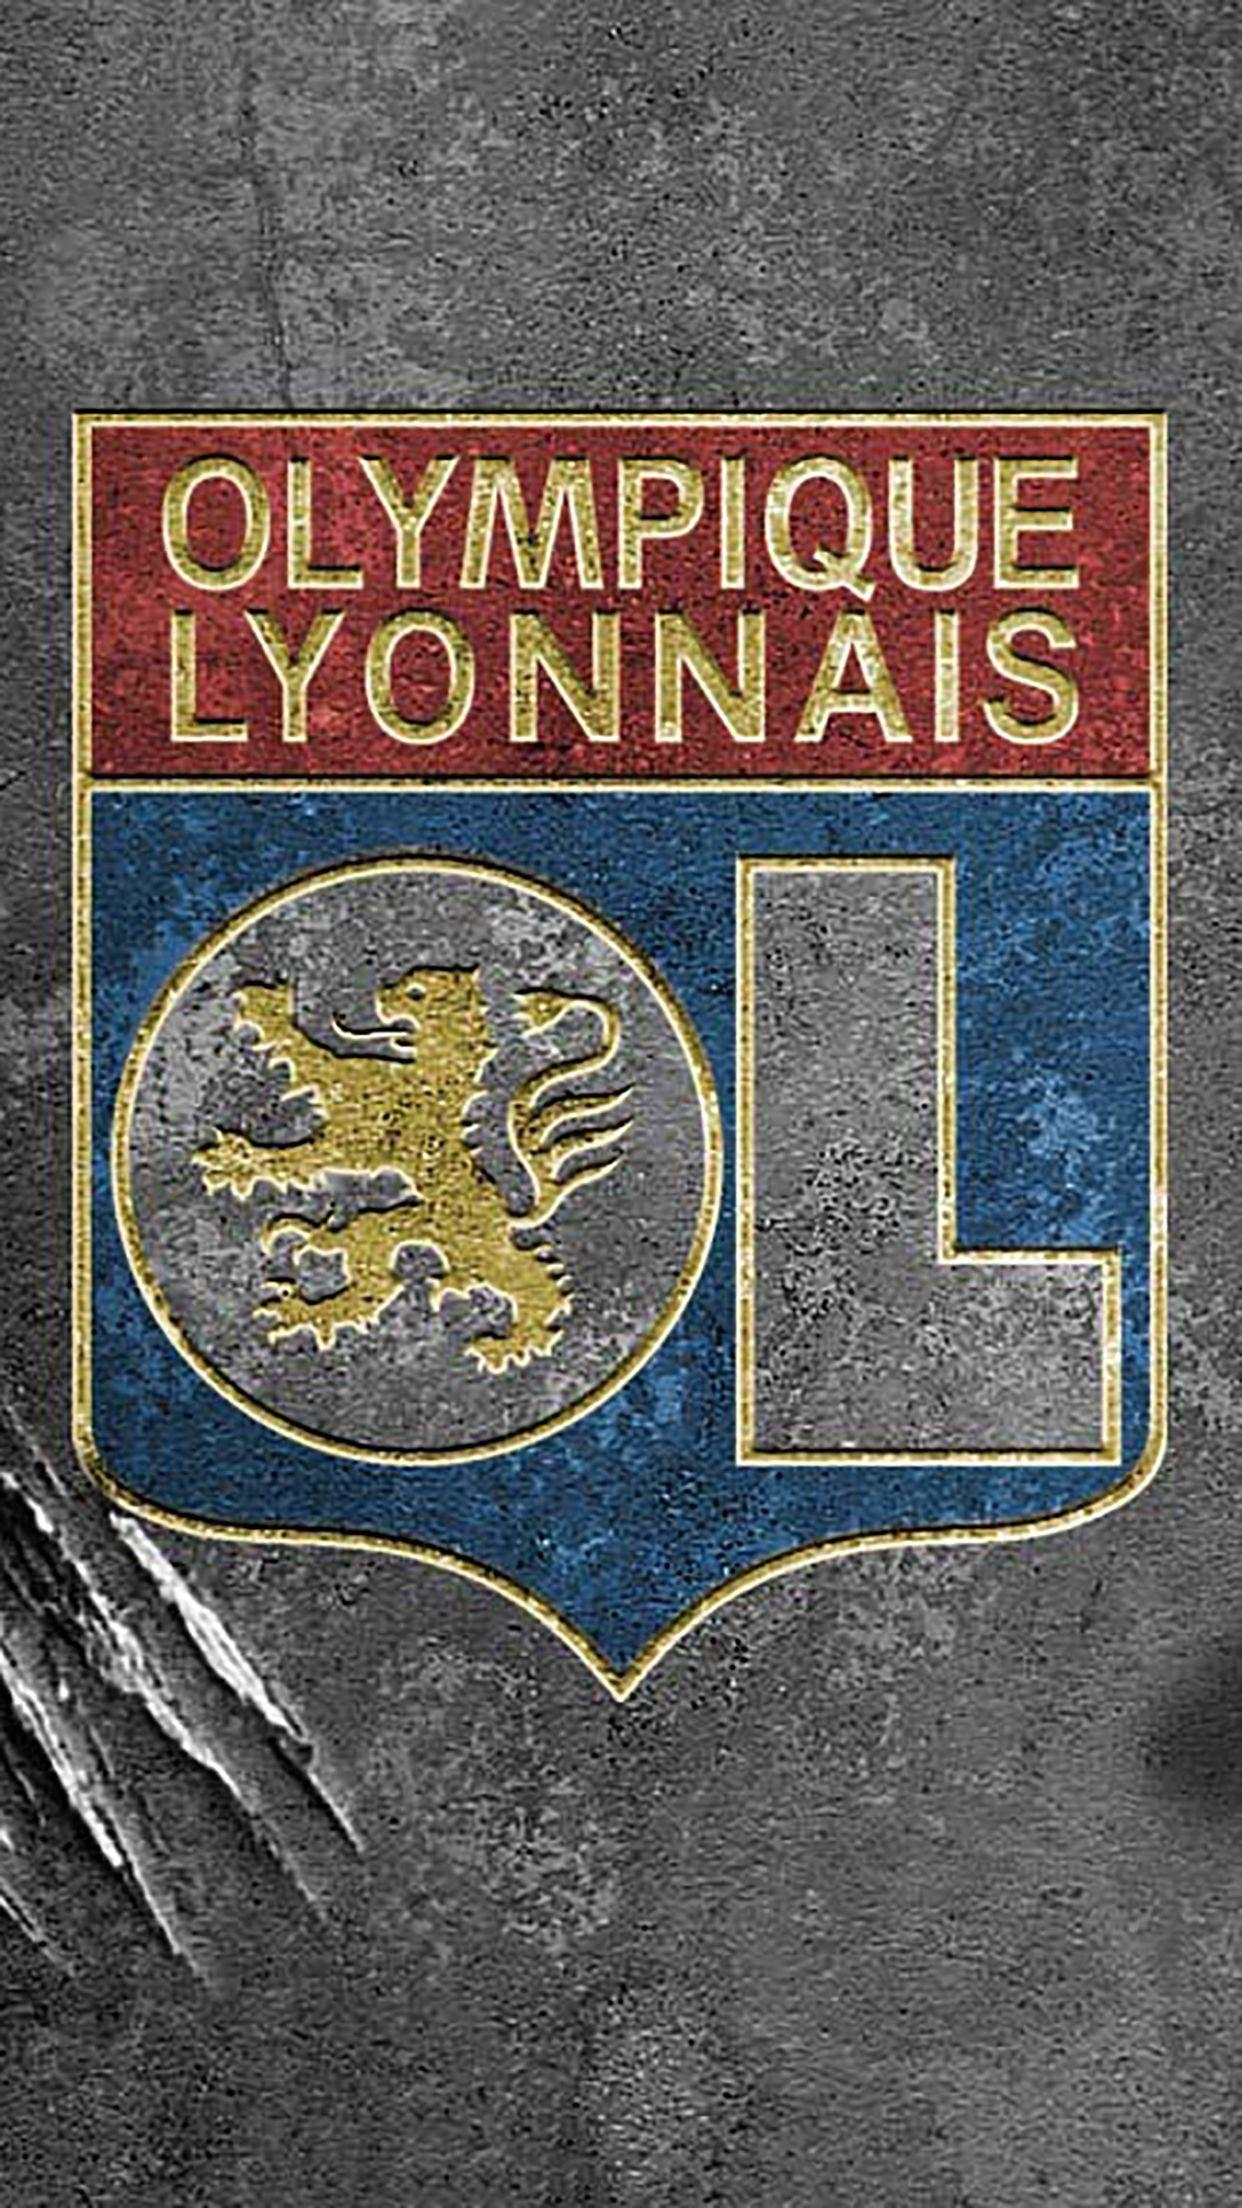 Olympique Lyonnais : Logo 2 Wallpapers For Iphone X, 8, 7, 6